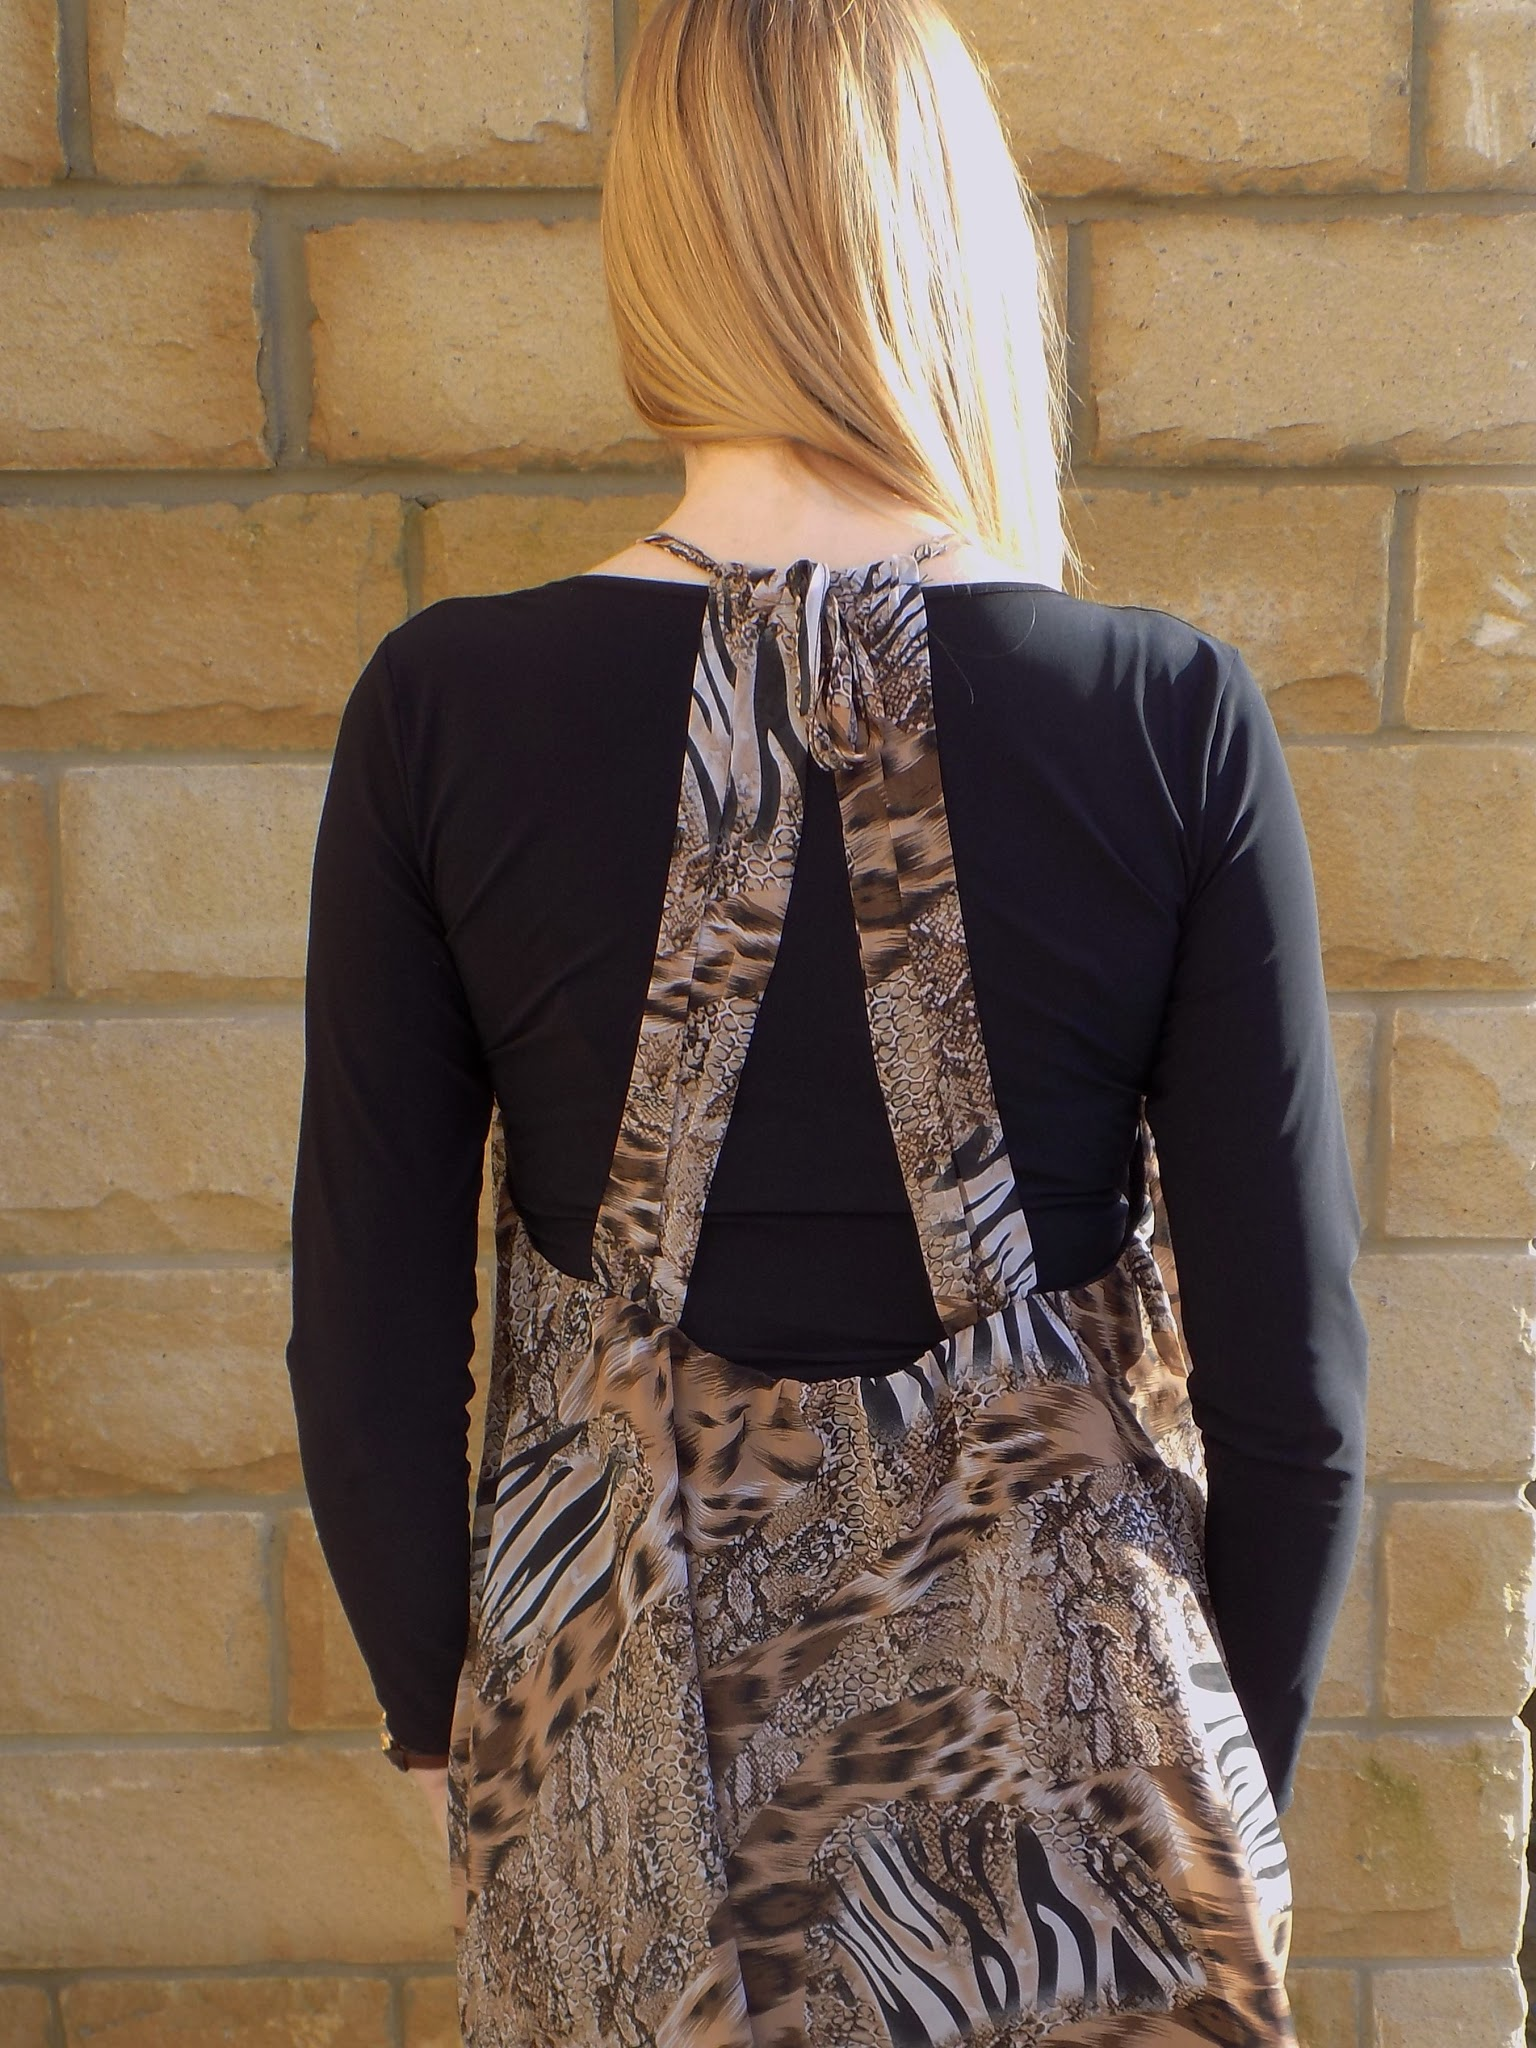 What Lizzy Loves wears animal print dress